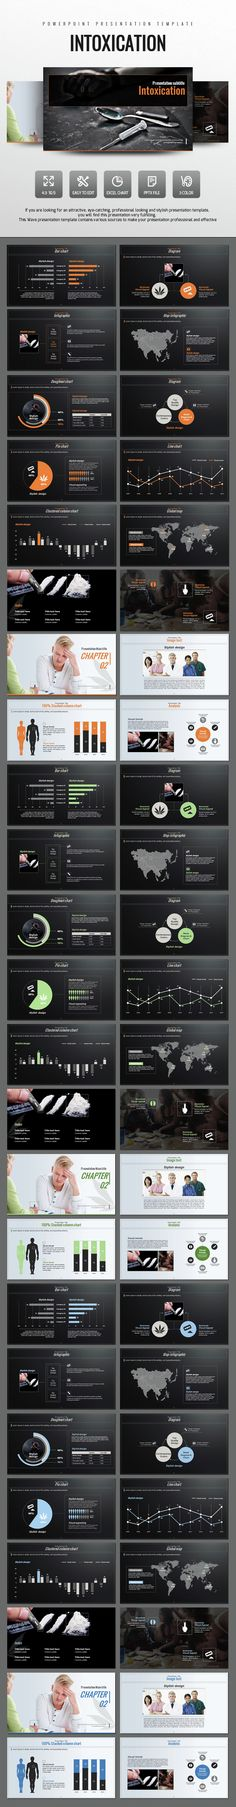 Intoxication PowerPoint Template. Download here: http://graphicriver.net/item/intoxication-powerpoint/15019167?ref=ksioks